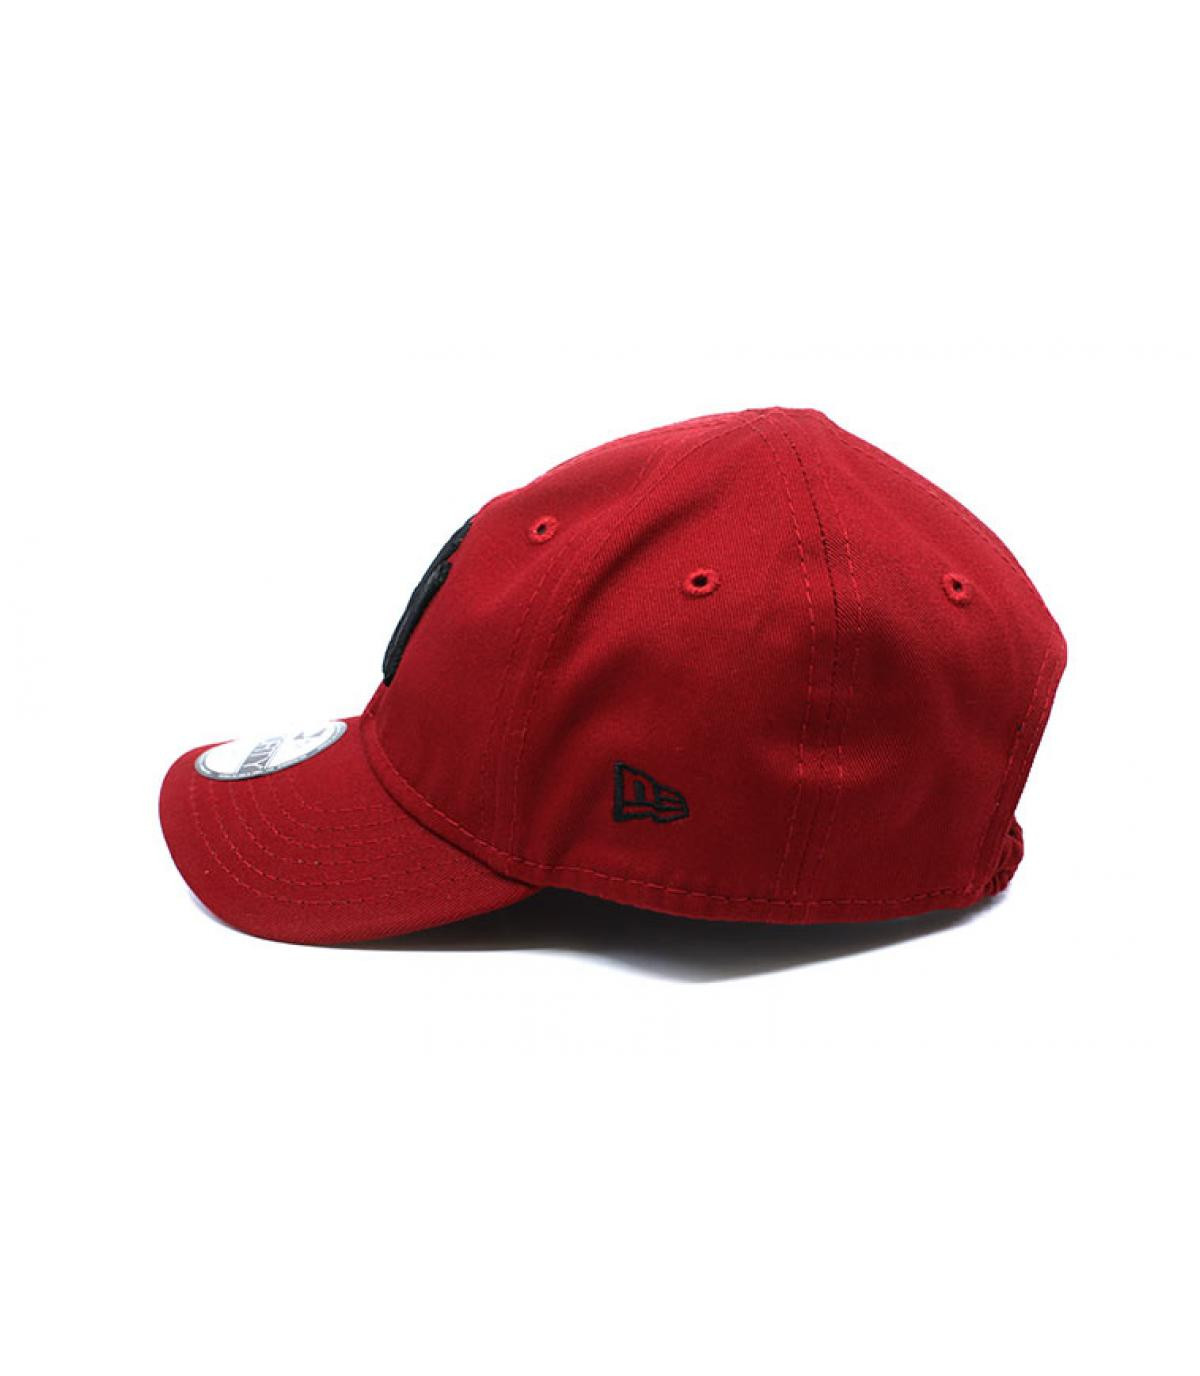 Détails Casquette Baby League Ess NY 9Forty hot red black - image 4